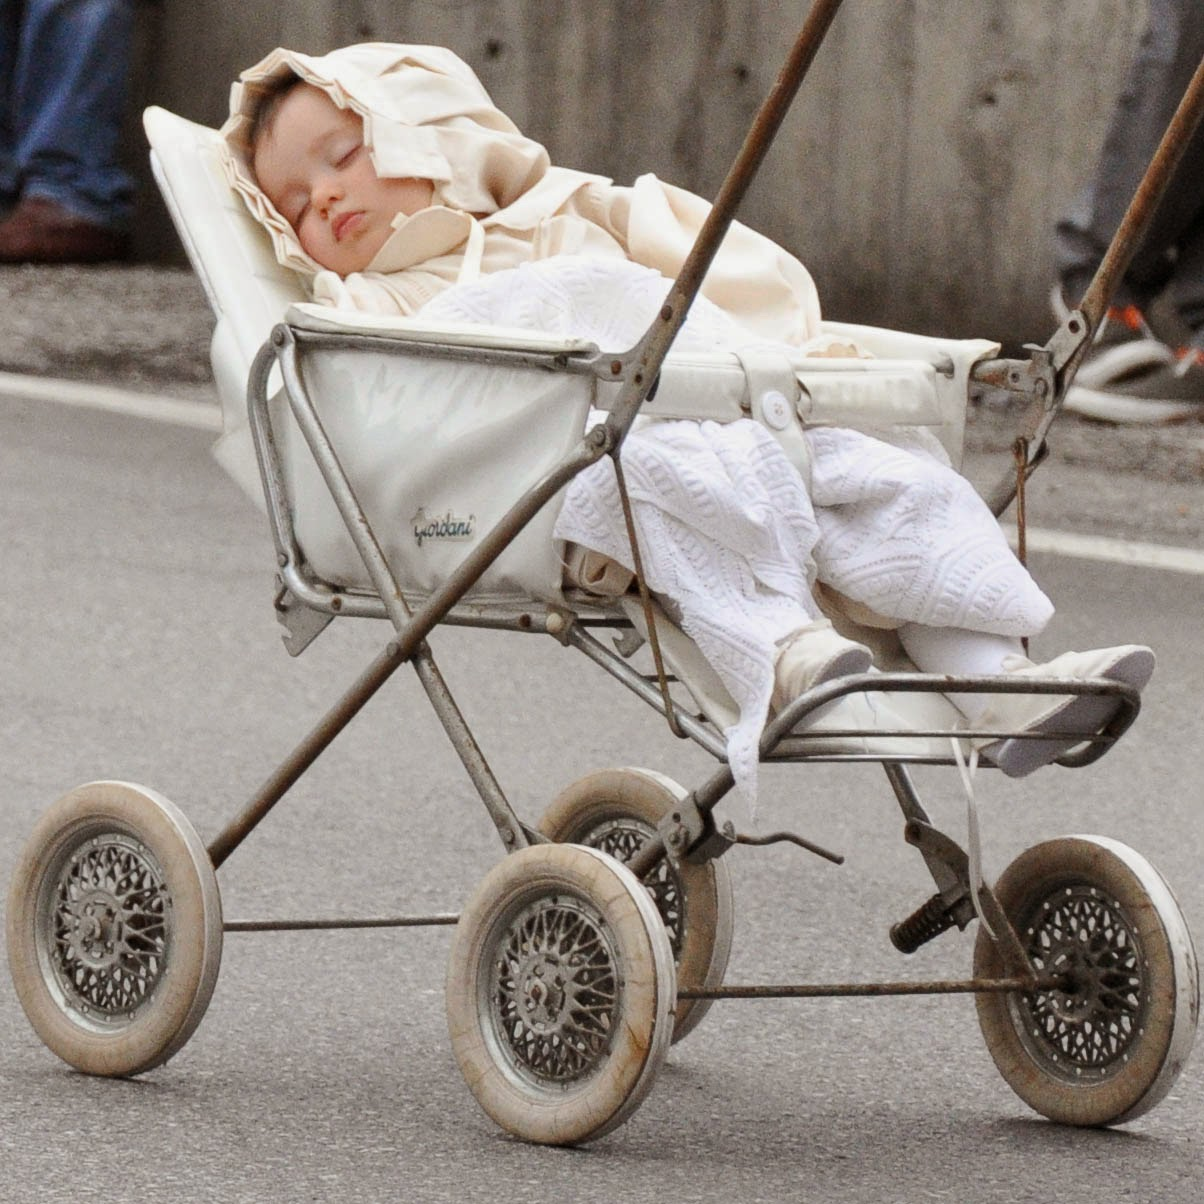 A baby in a vintage pushchair at the Parade, Donkey Race, Romano d'Ezzelino, Veneto, Italy